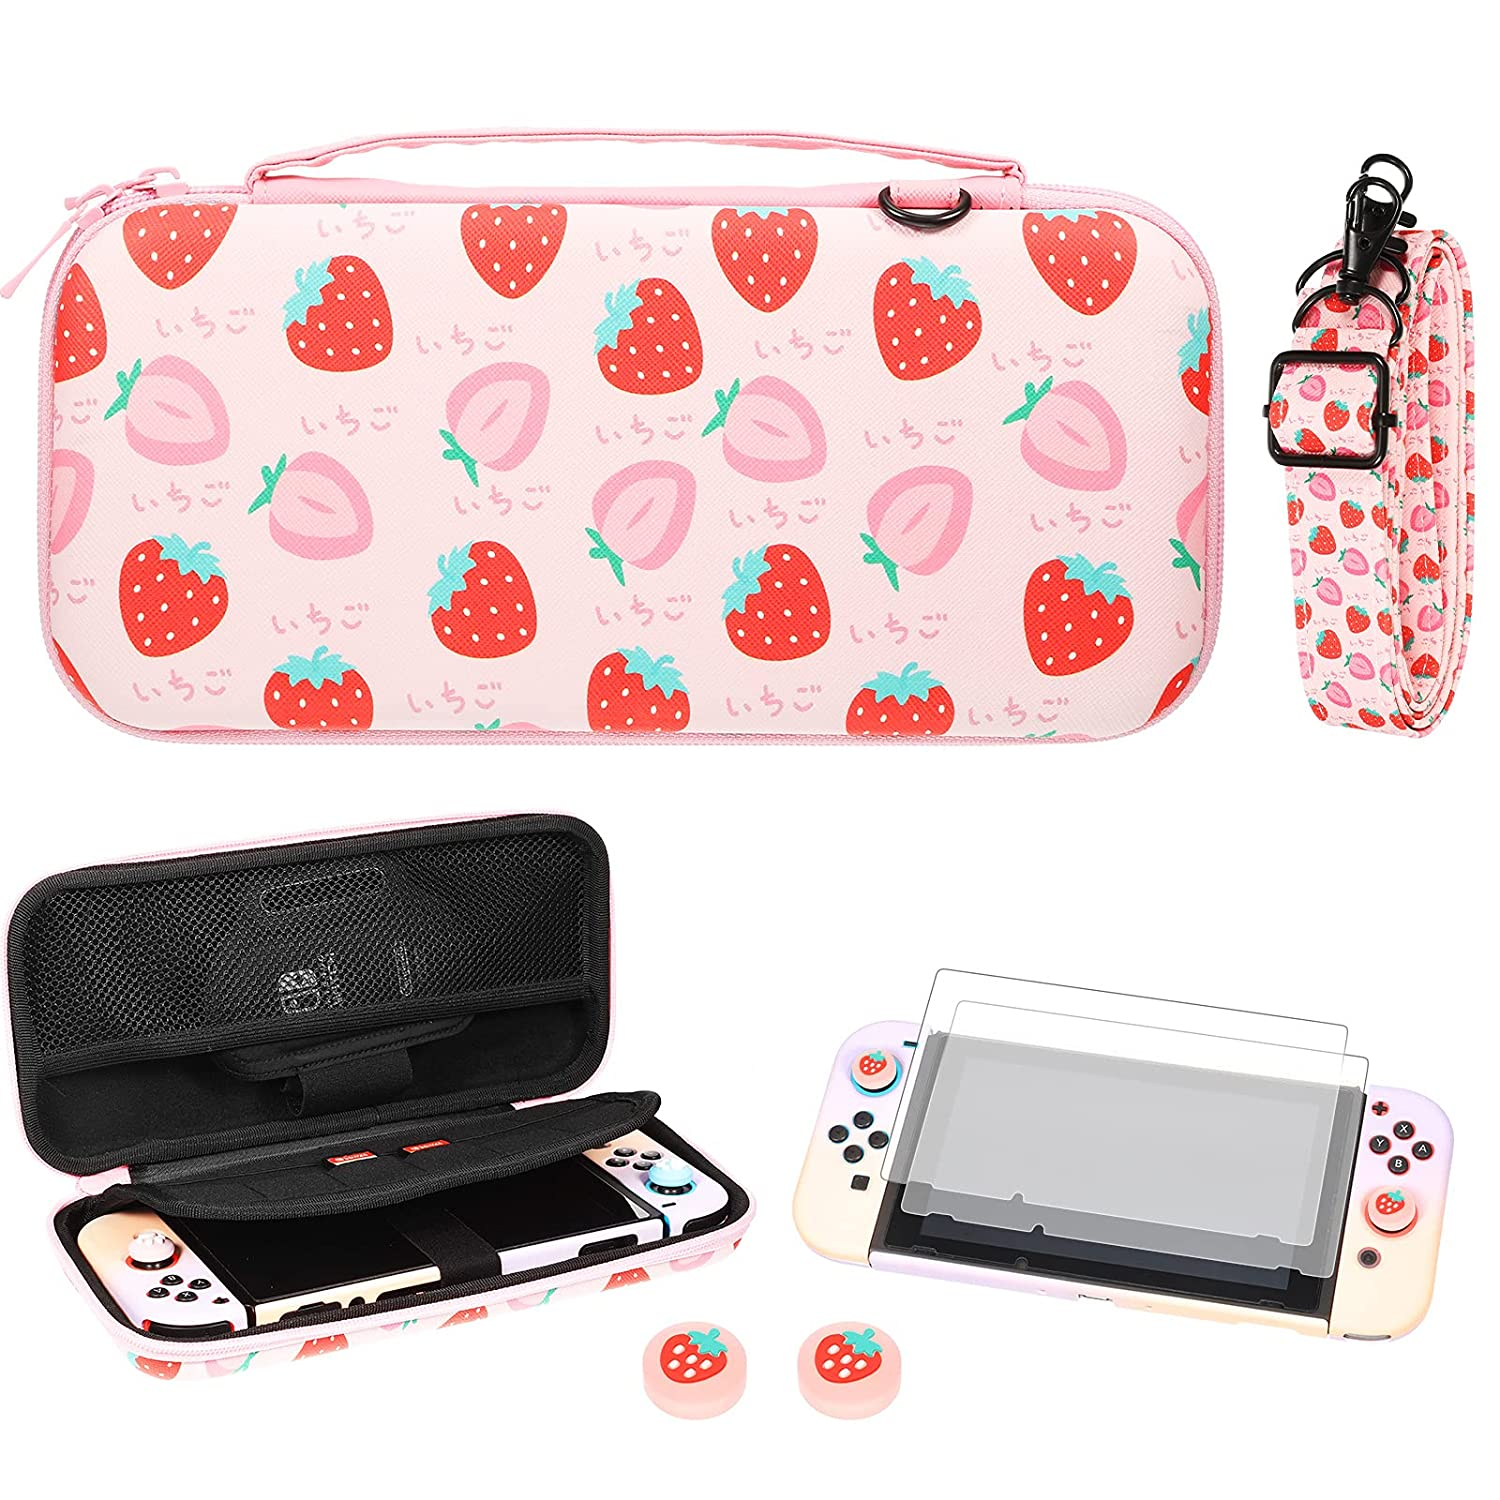 Strawberry Print Protective Max 78% cheap OFF Carry Portable Case Hard Travel